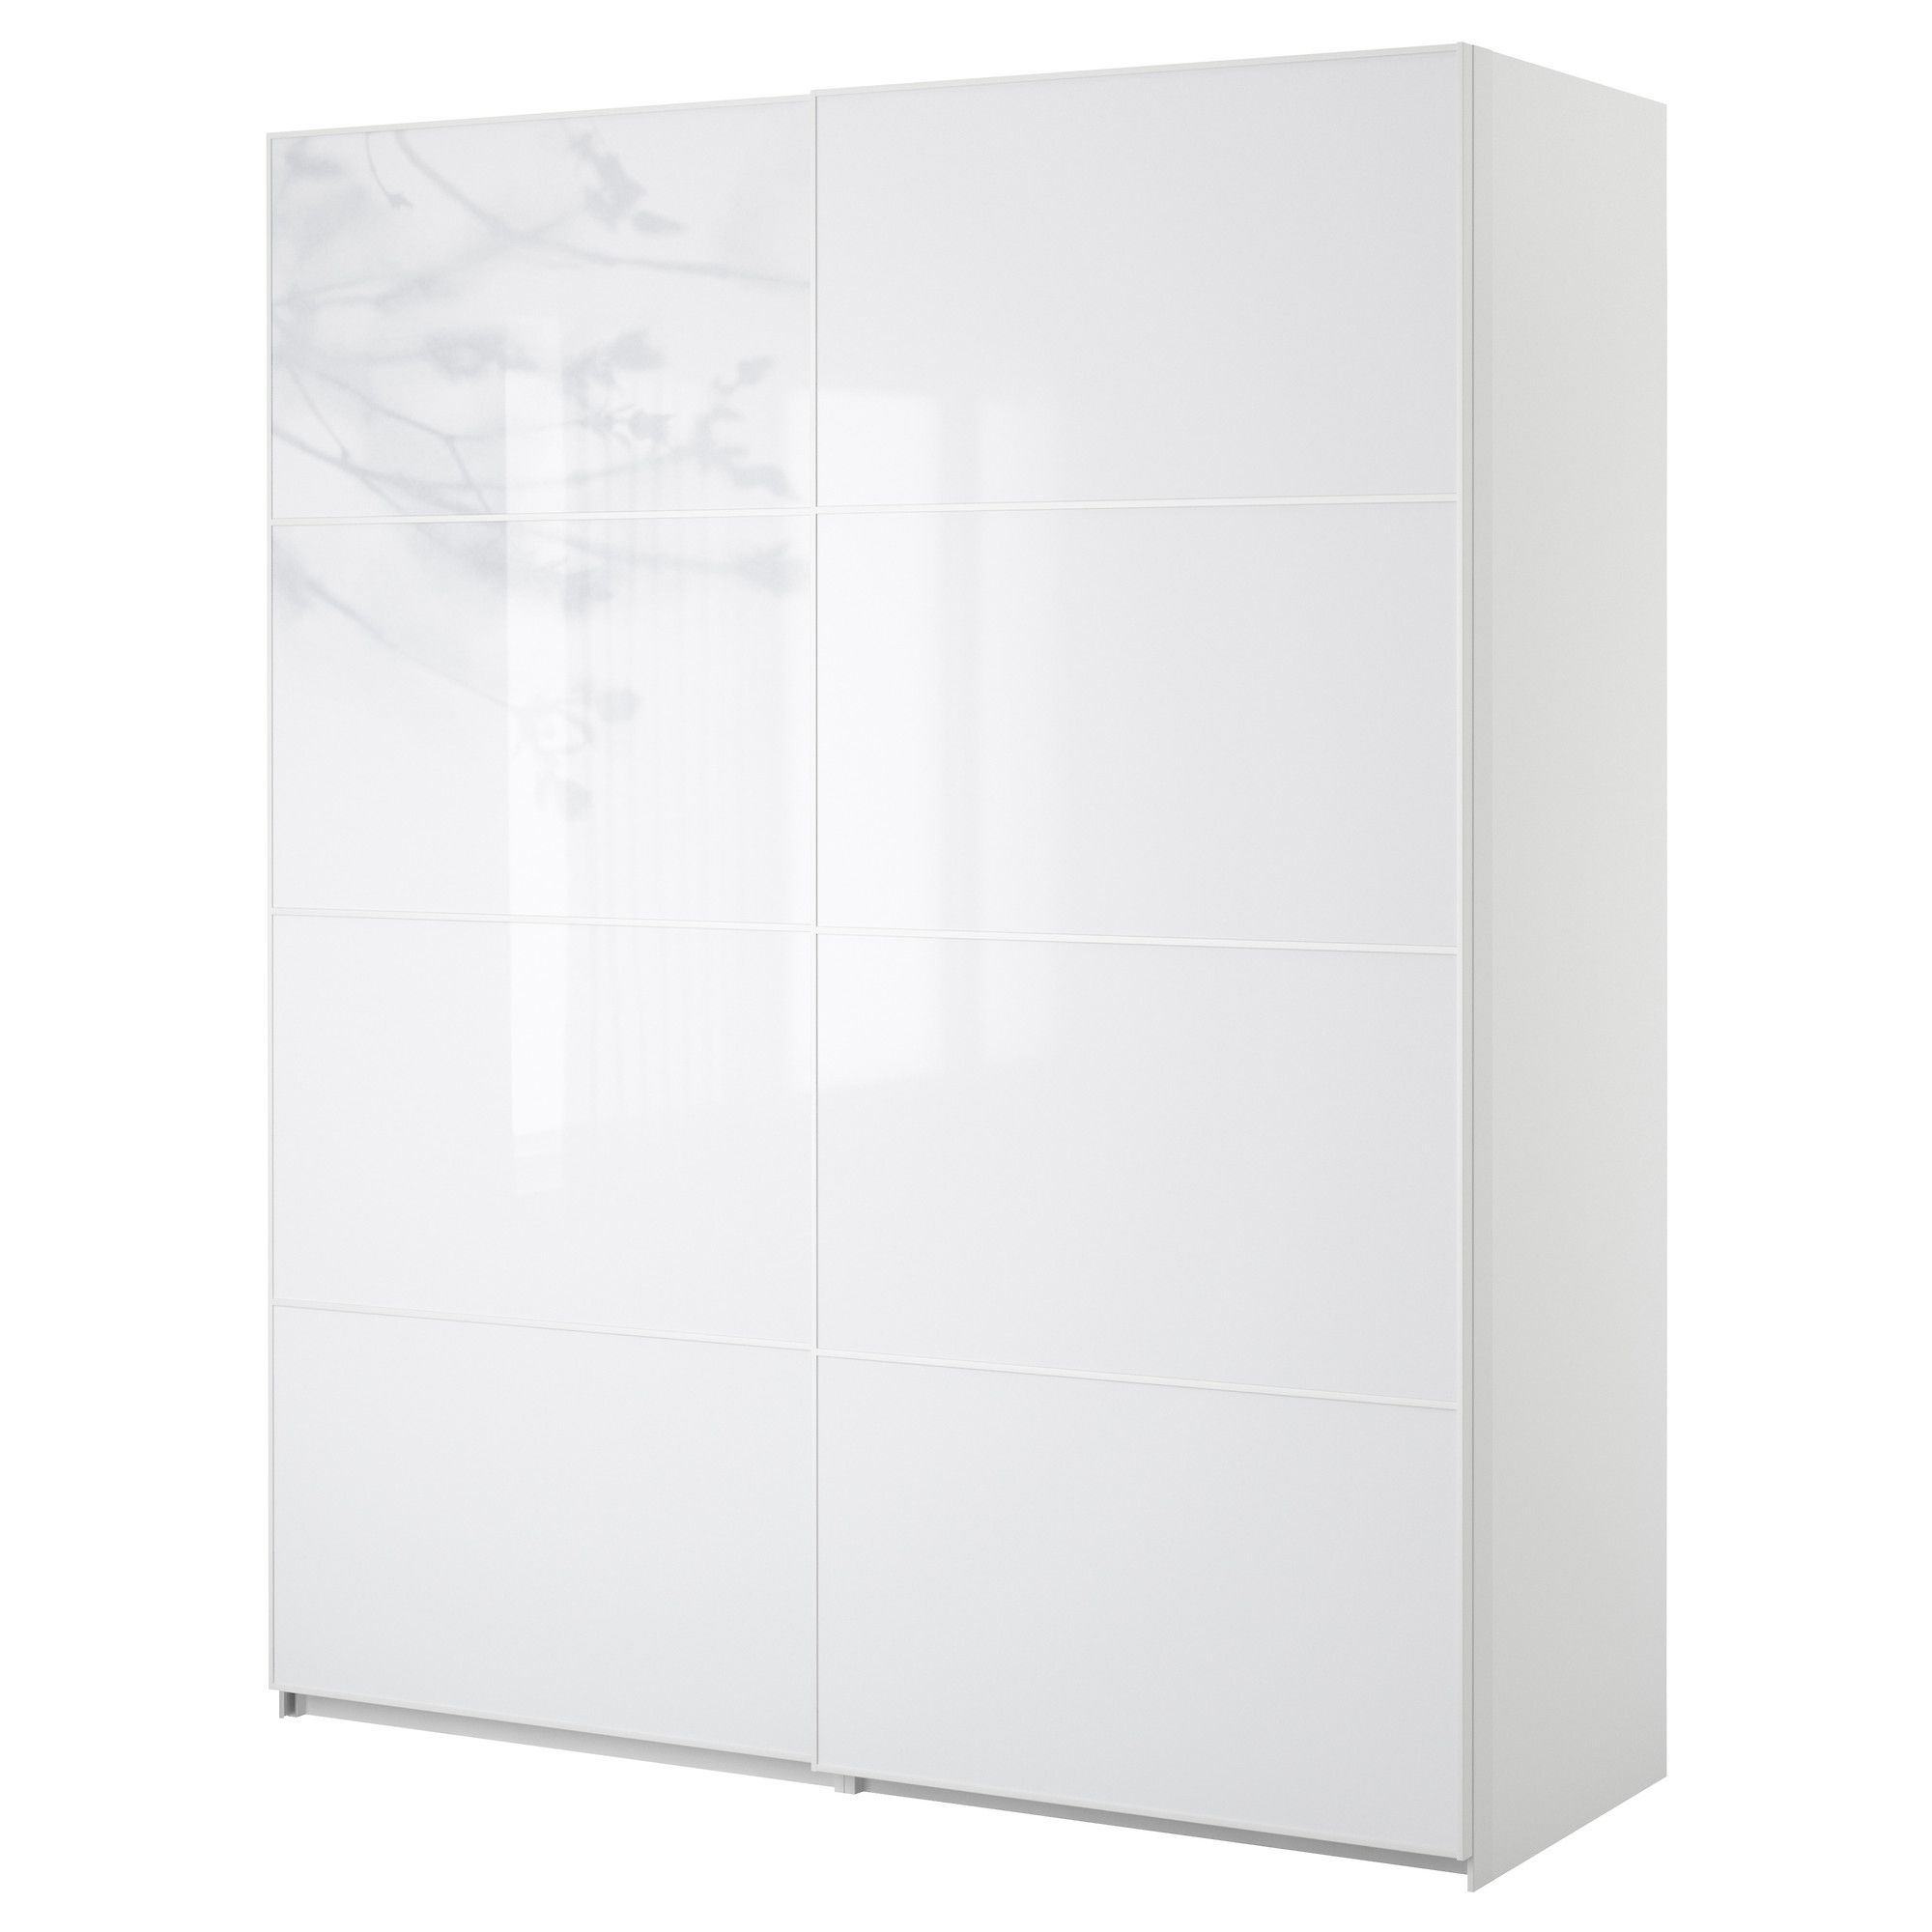 Materials ikea pax tonnes sliding doors white - White Pax Wardrobe With Sliding Doors Possible Major Room Accent Building On The Wood Stone Shelf Accent Wall Idea Sliding Doors Demand Less Space